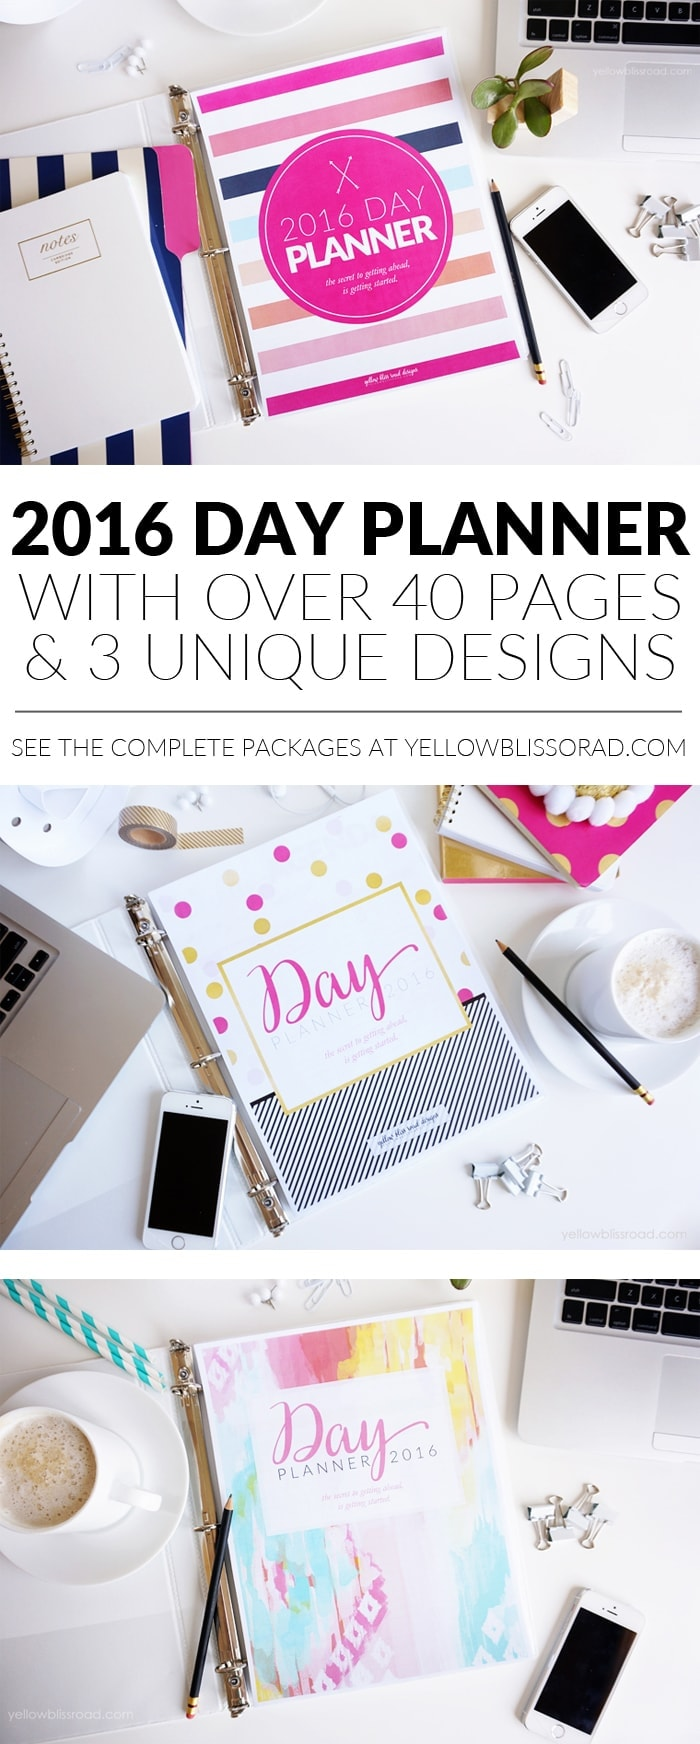 2016 Day Planners from Yellow Bliss Road